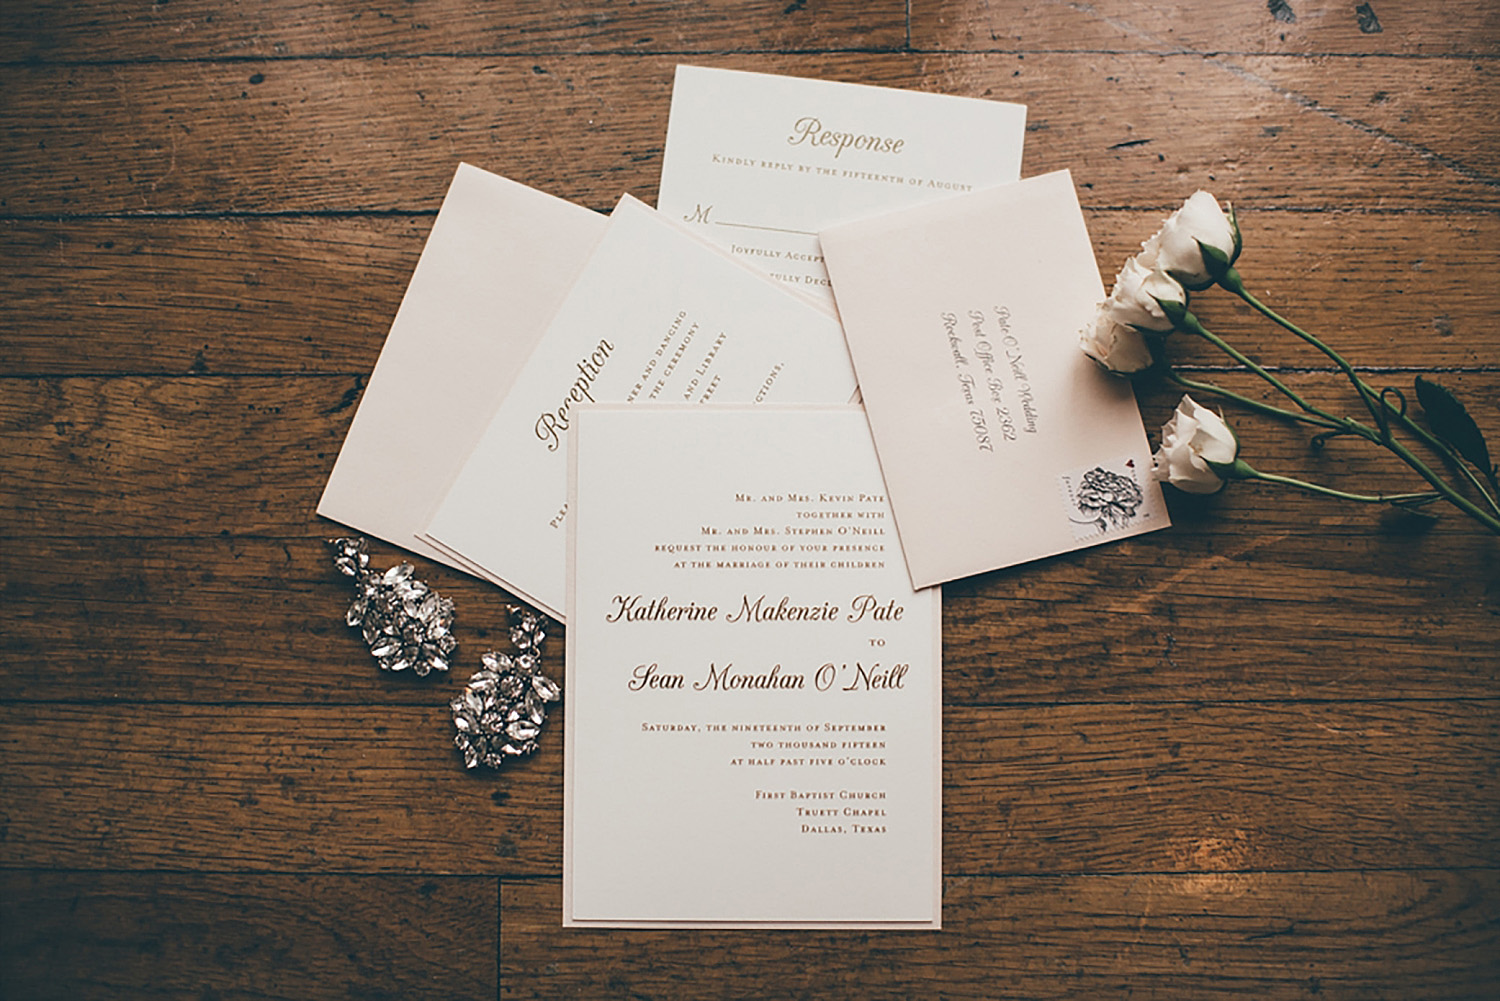 Dallas Scottish Rite Library and Museum wedding invitations with gold writing and white flowers on wood floor